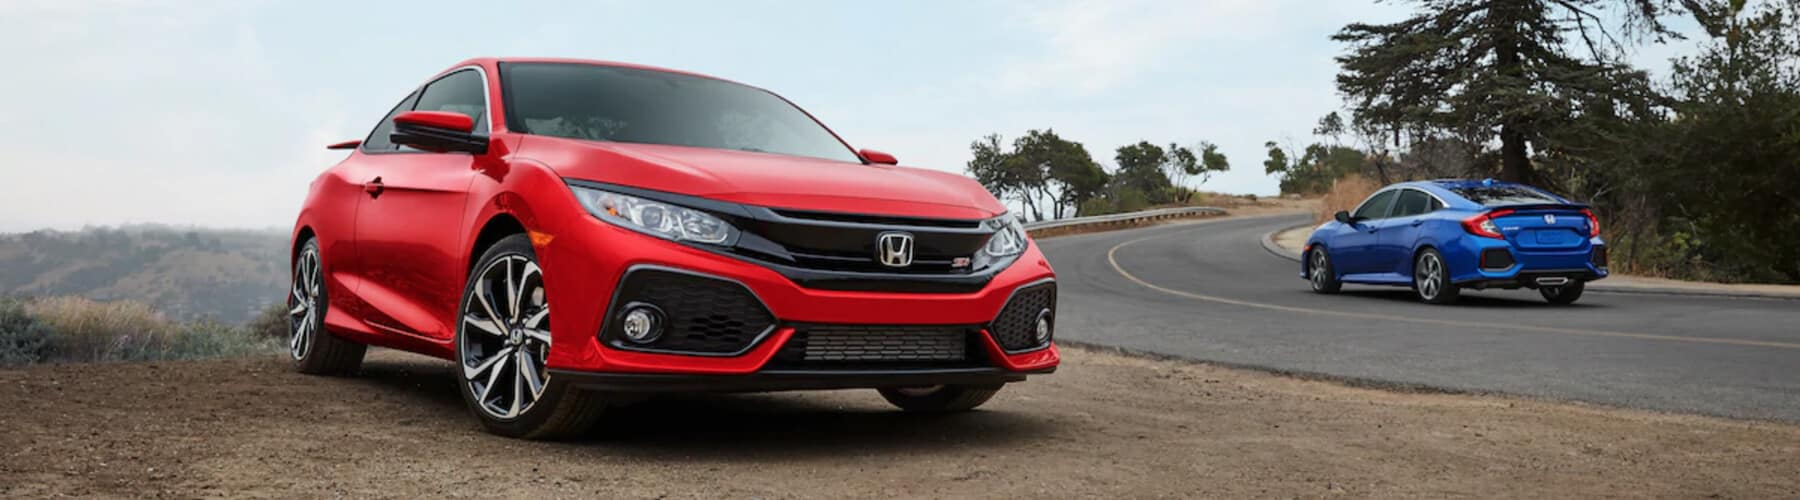 2019 Honda Civic Si Coupe Banner